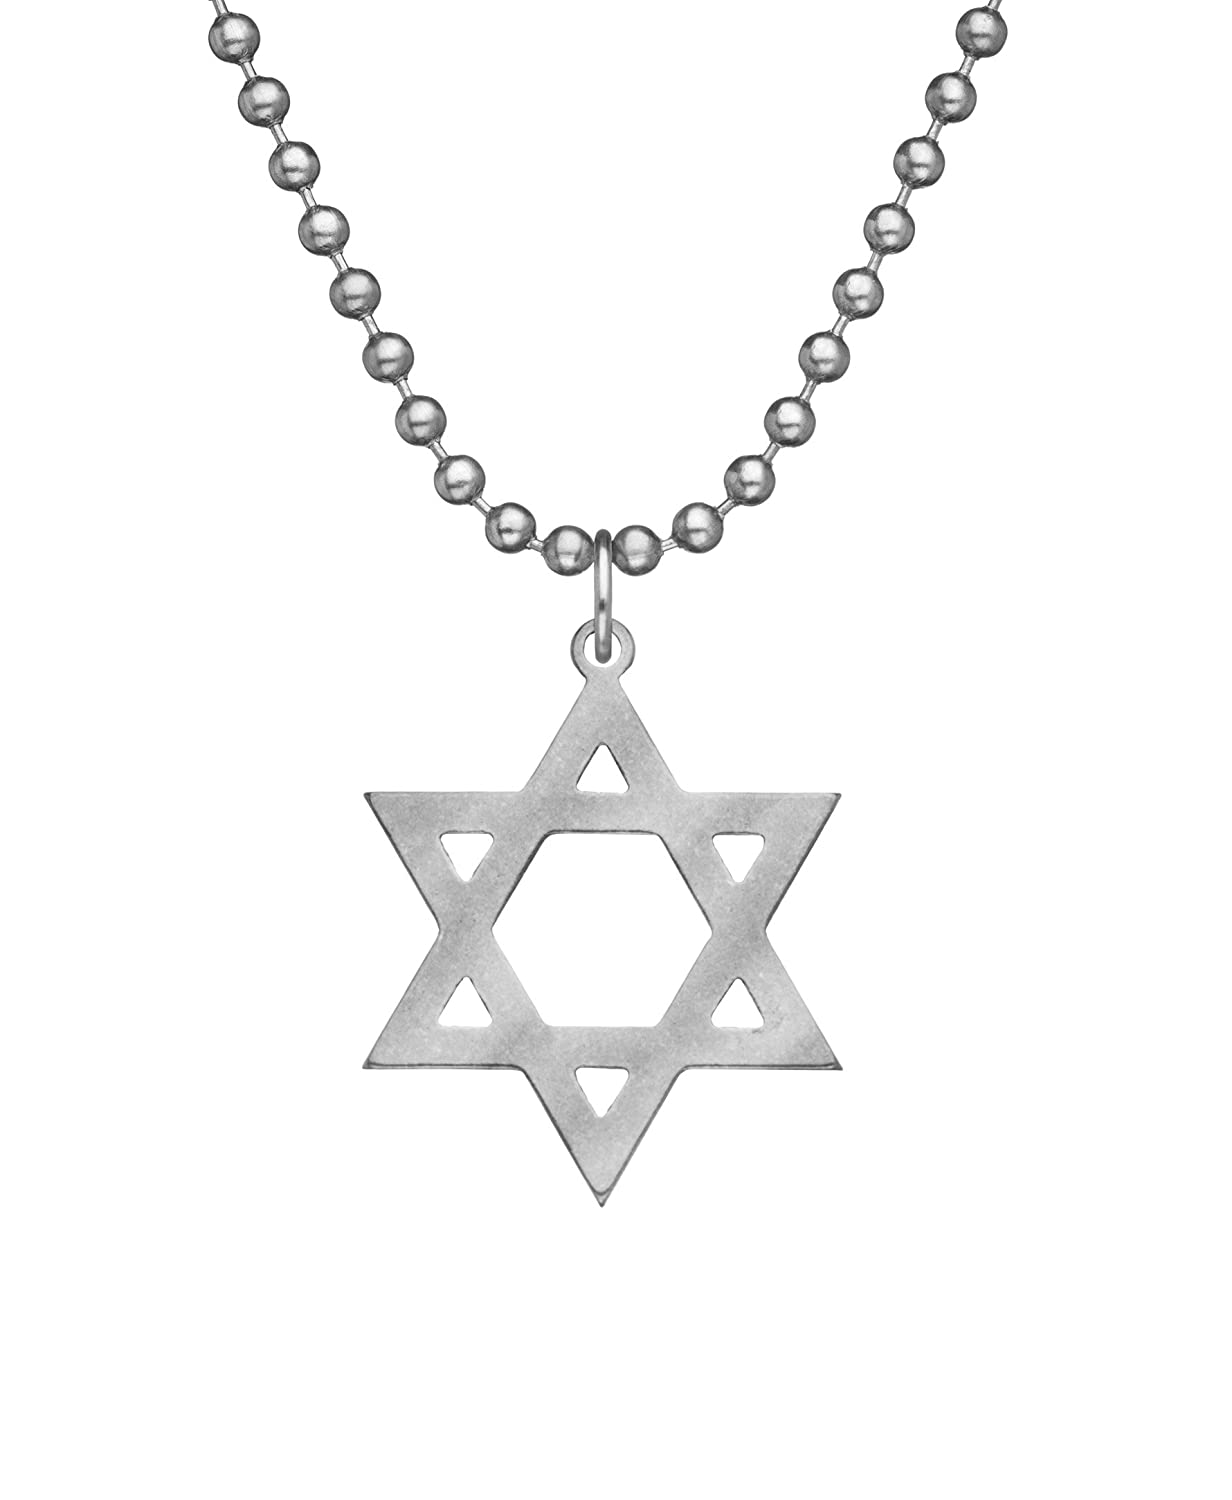 ea84cb7a0 GI JEWELRY Genuine U.S. Military Issue Star of David With Beaded Chain - 24